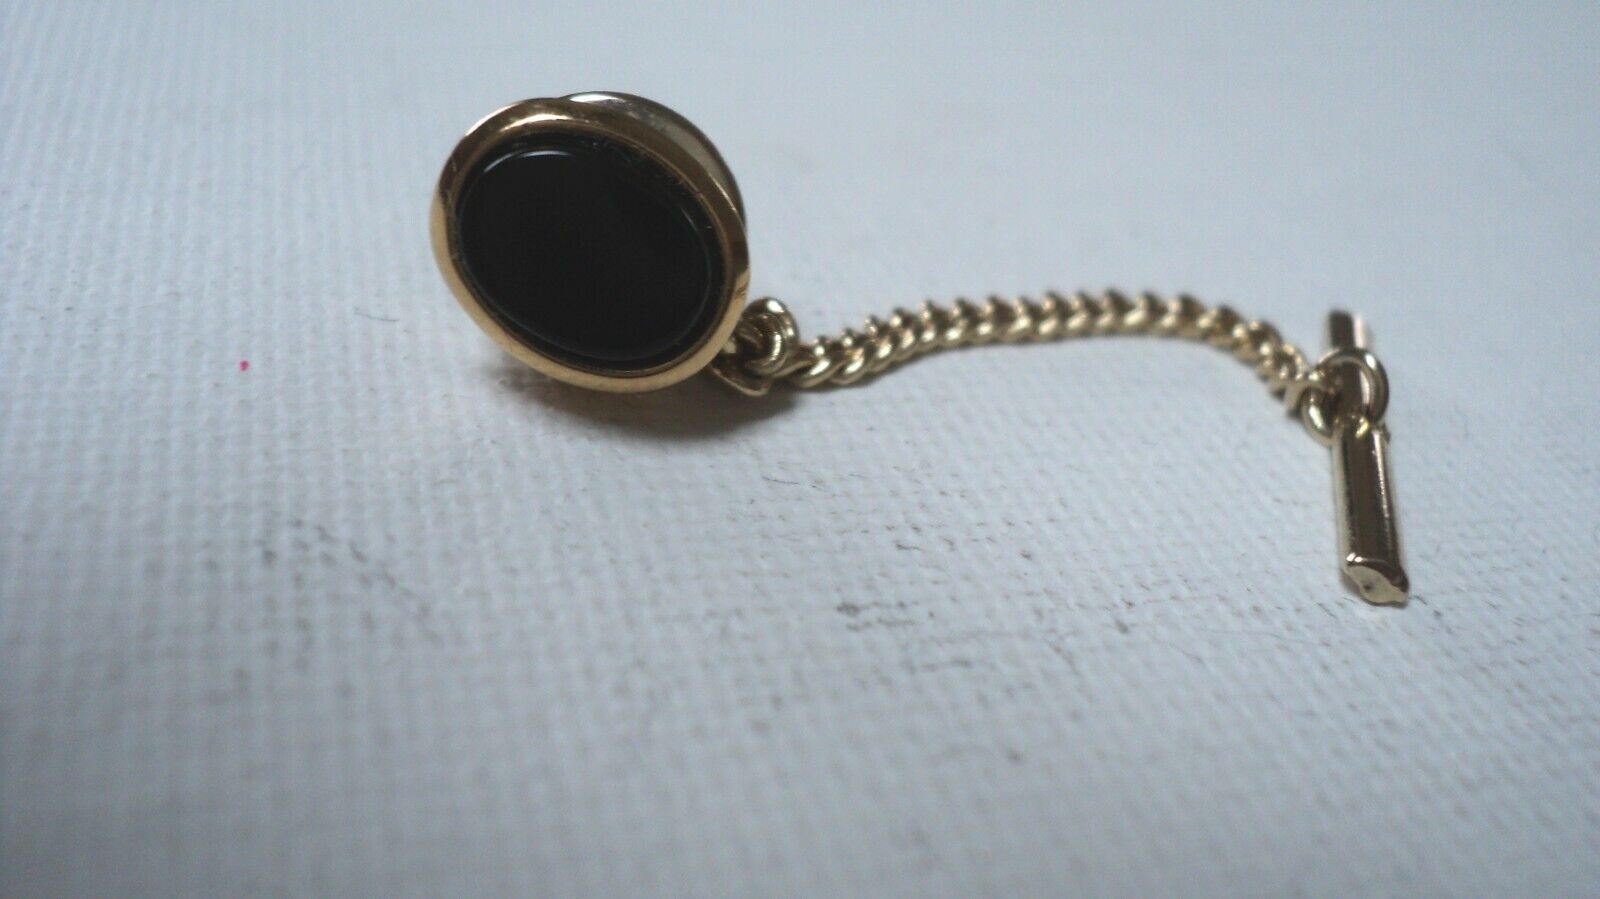 Vintage Goldtone Onyx Black Oval Shaped Tie Tack/Clip With Chain - $8.00